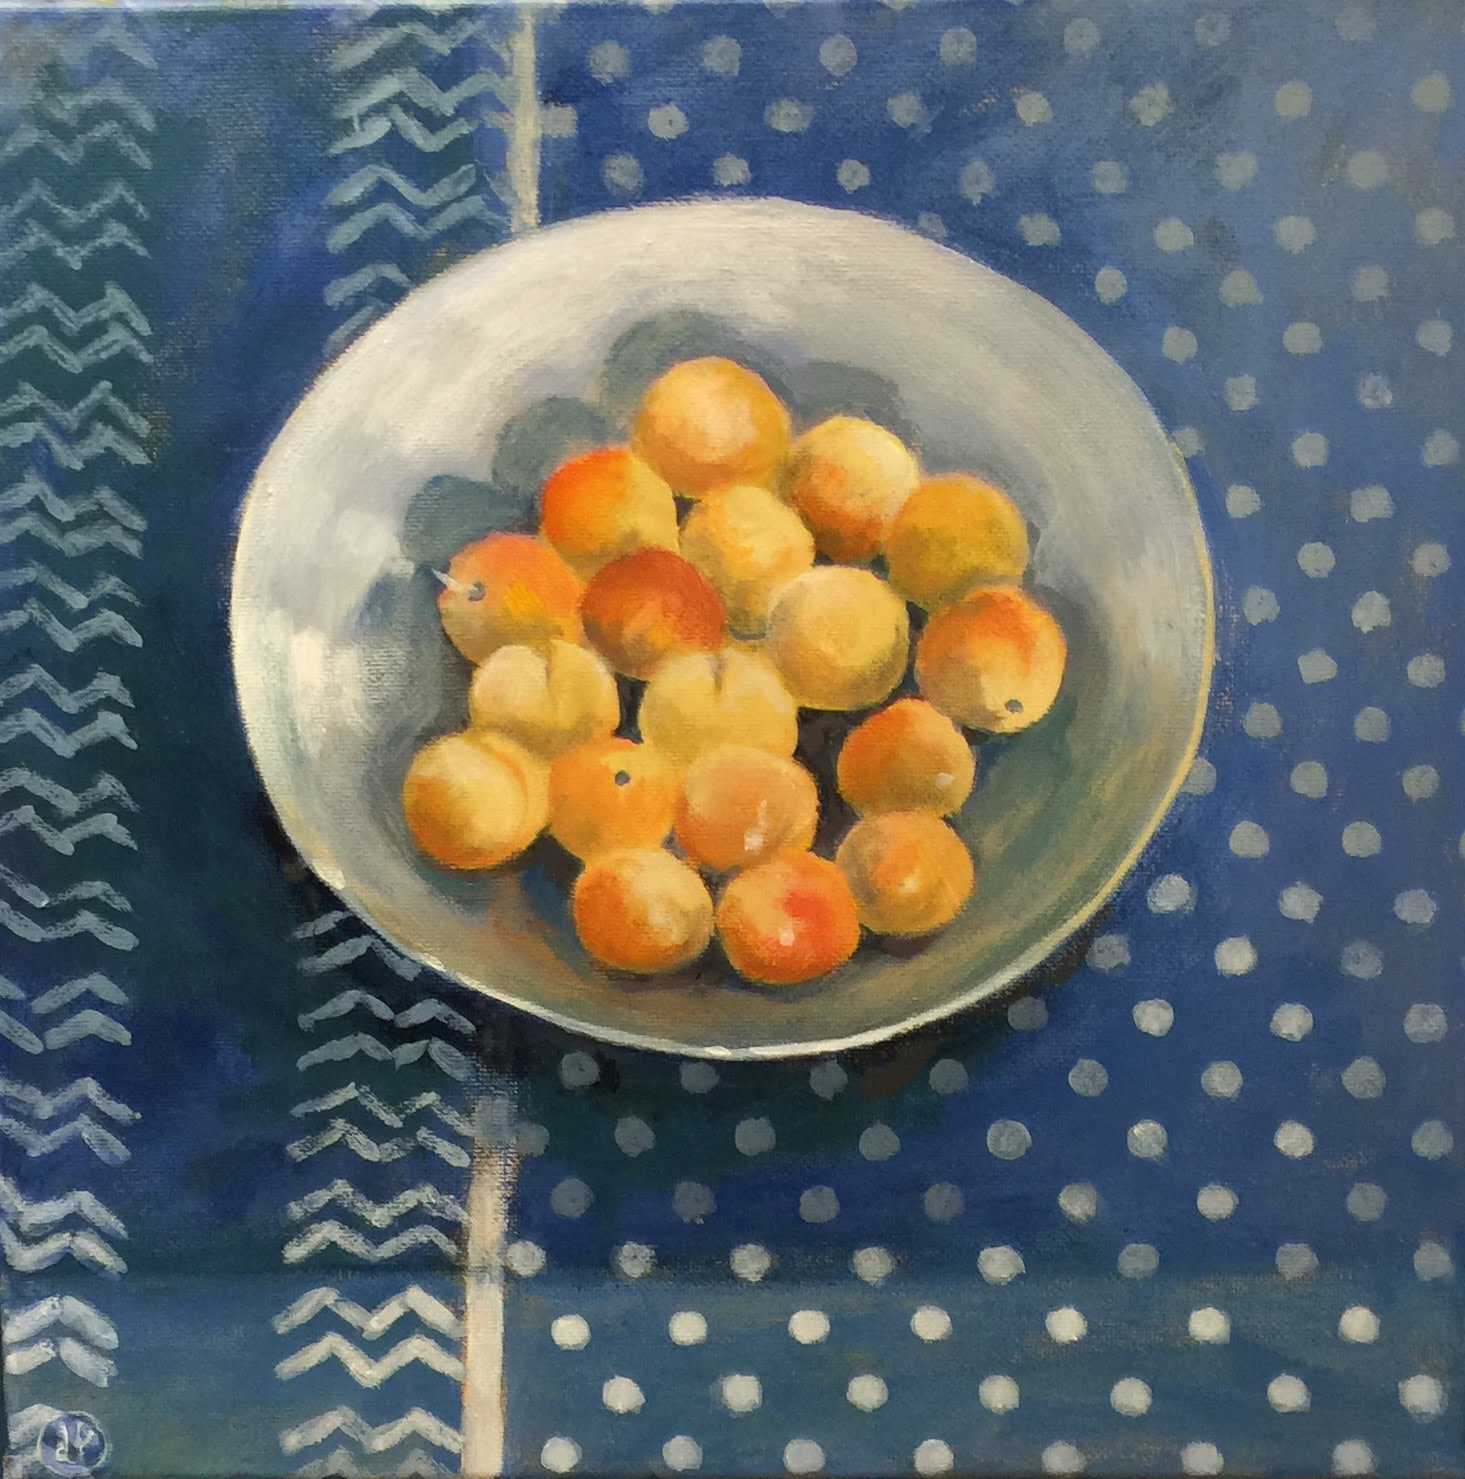 """<span class=""""link fancybox-details-link""""><a href=""""/artists/34-joyce-pinch/works/1639-joyce-pinch-charmeneuil-plums/"""">View Detail Page</a></span><div class=""""artist""""><strong>Joyce Pinch</strong></div> <div class=""""title""""><em>Charmeneuil Plums</em></div> <div class=""""medium"""">Acrylic on Canvas (framed)</div> <div class=""""dimensions"""">30 x 30 cm</div><div class=""""price"""">£300.00</div><div class=""""copyright_line"""">Copyright The Artist</div>"""